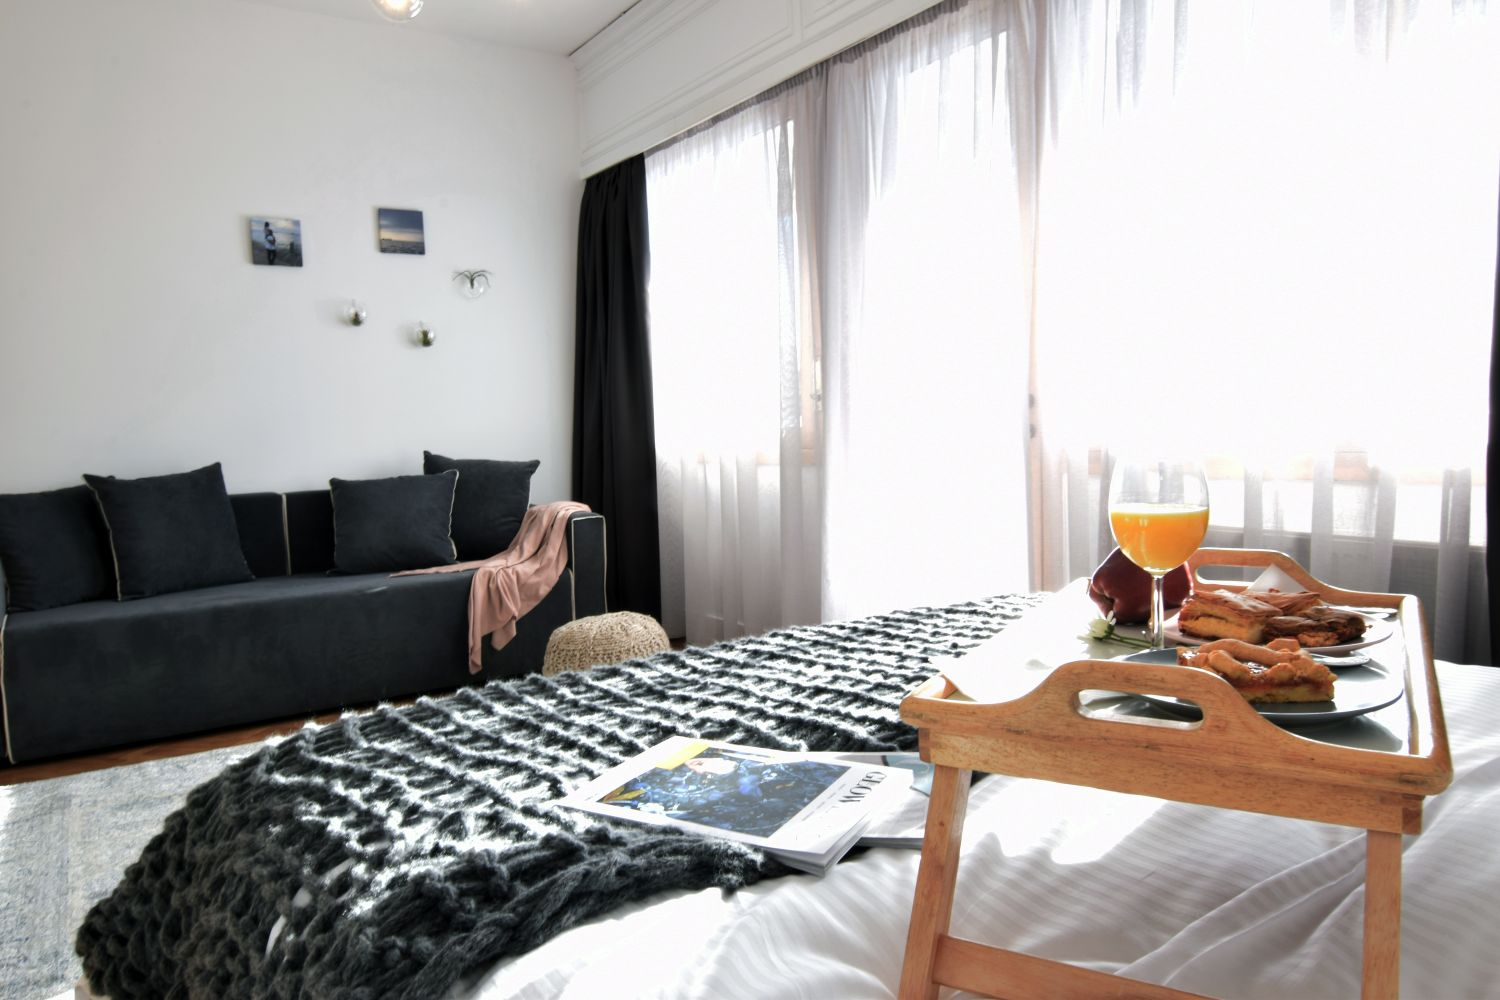 804 Living area with 1 double bed